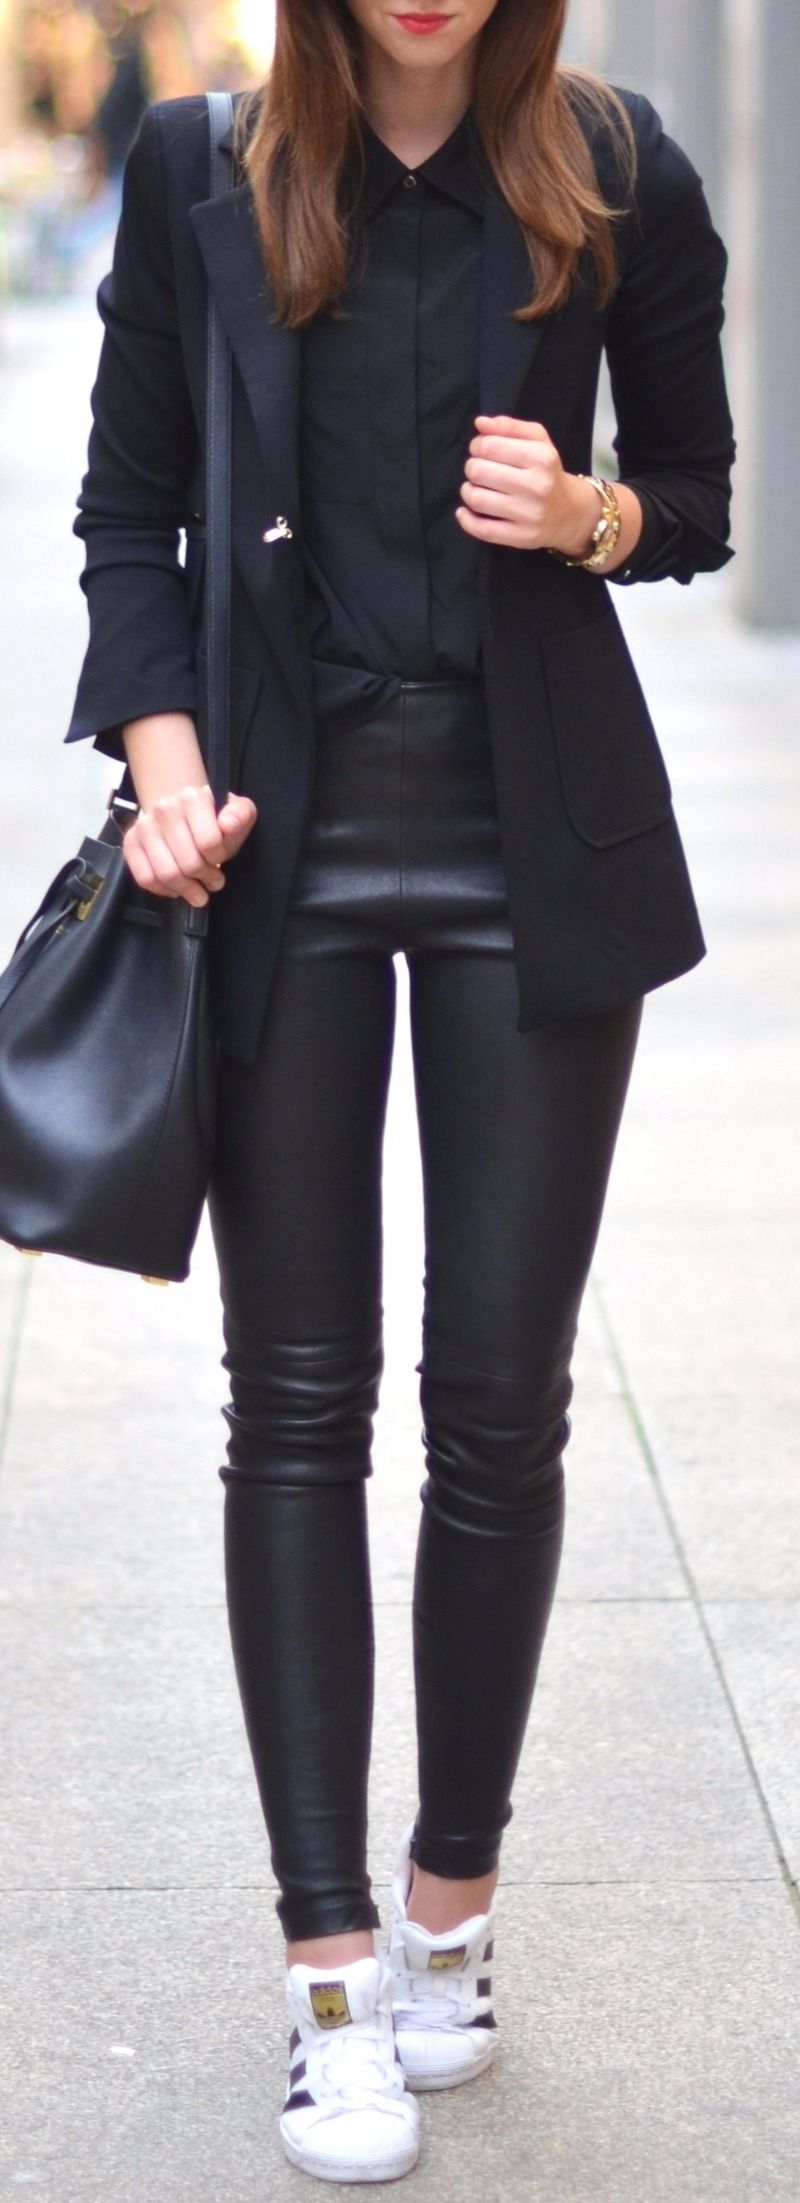 Plan Your Entire Outfit With These 5 Best Fall Fashion Trends